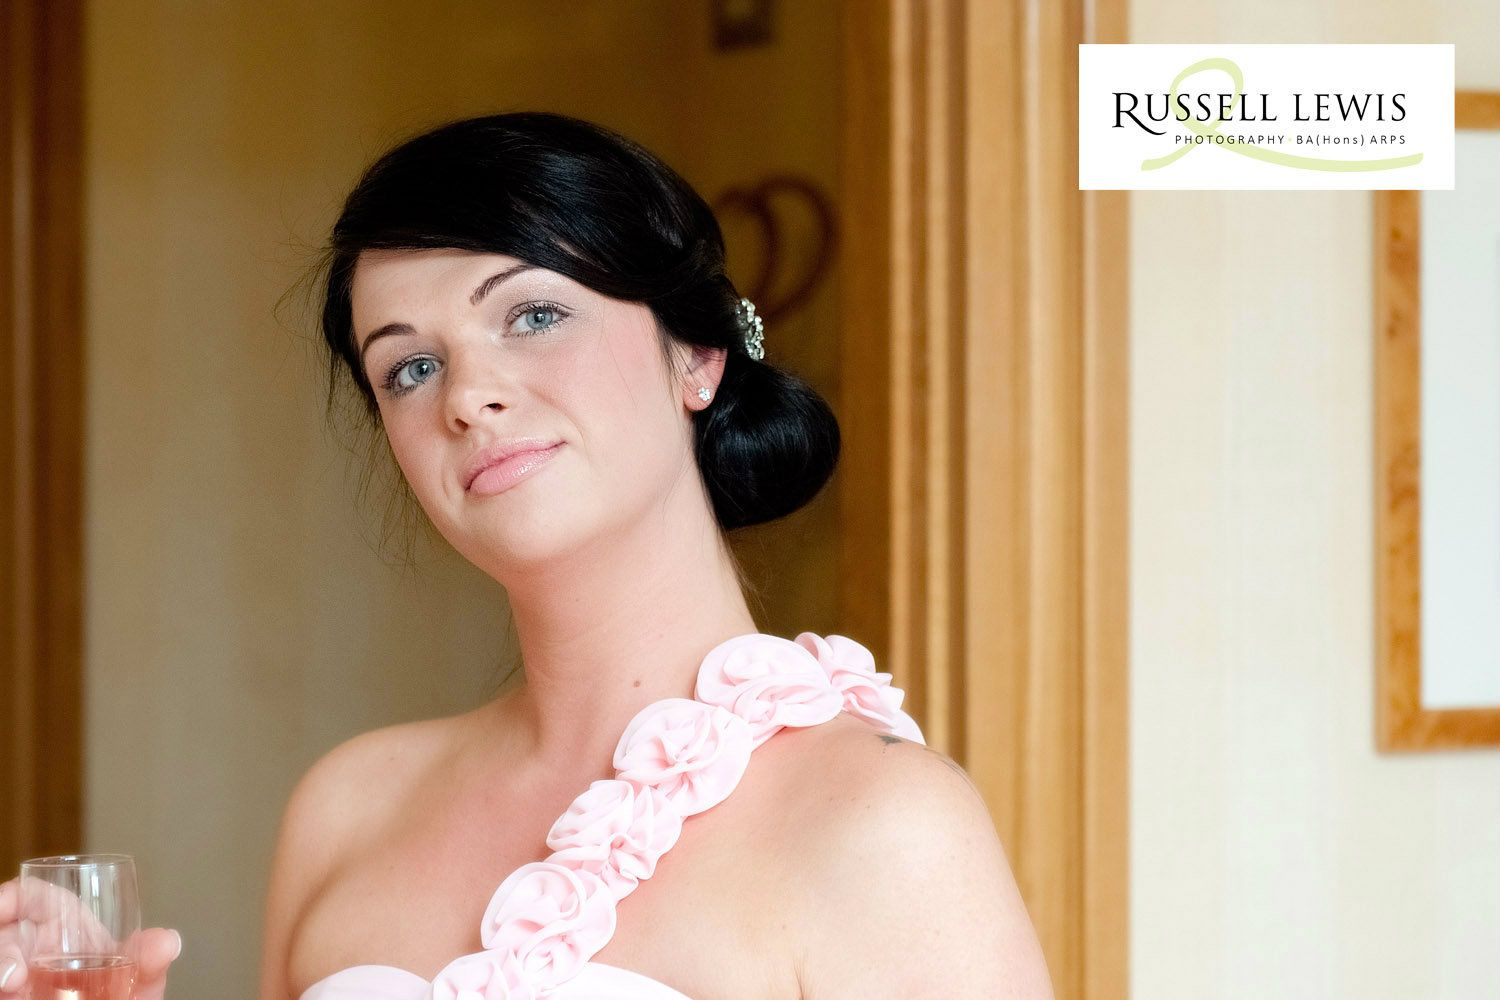 Tewkesbury-gloucestershire-UK-wedding-hairdresser-EMHKS (6)